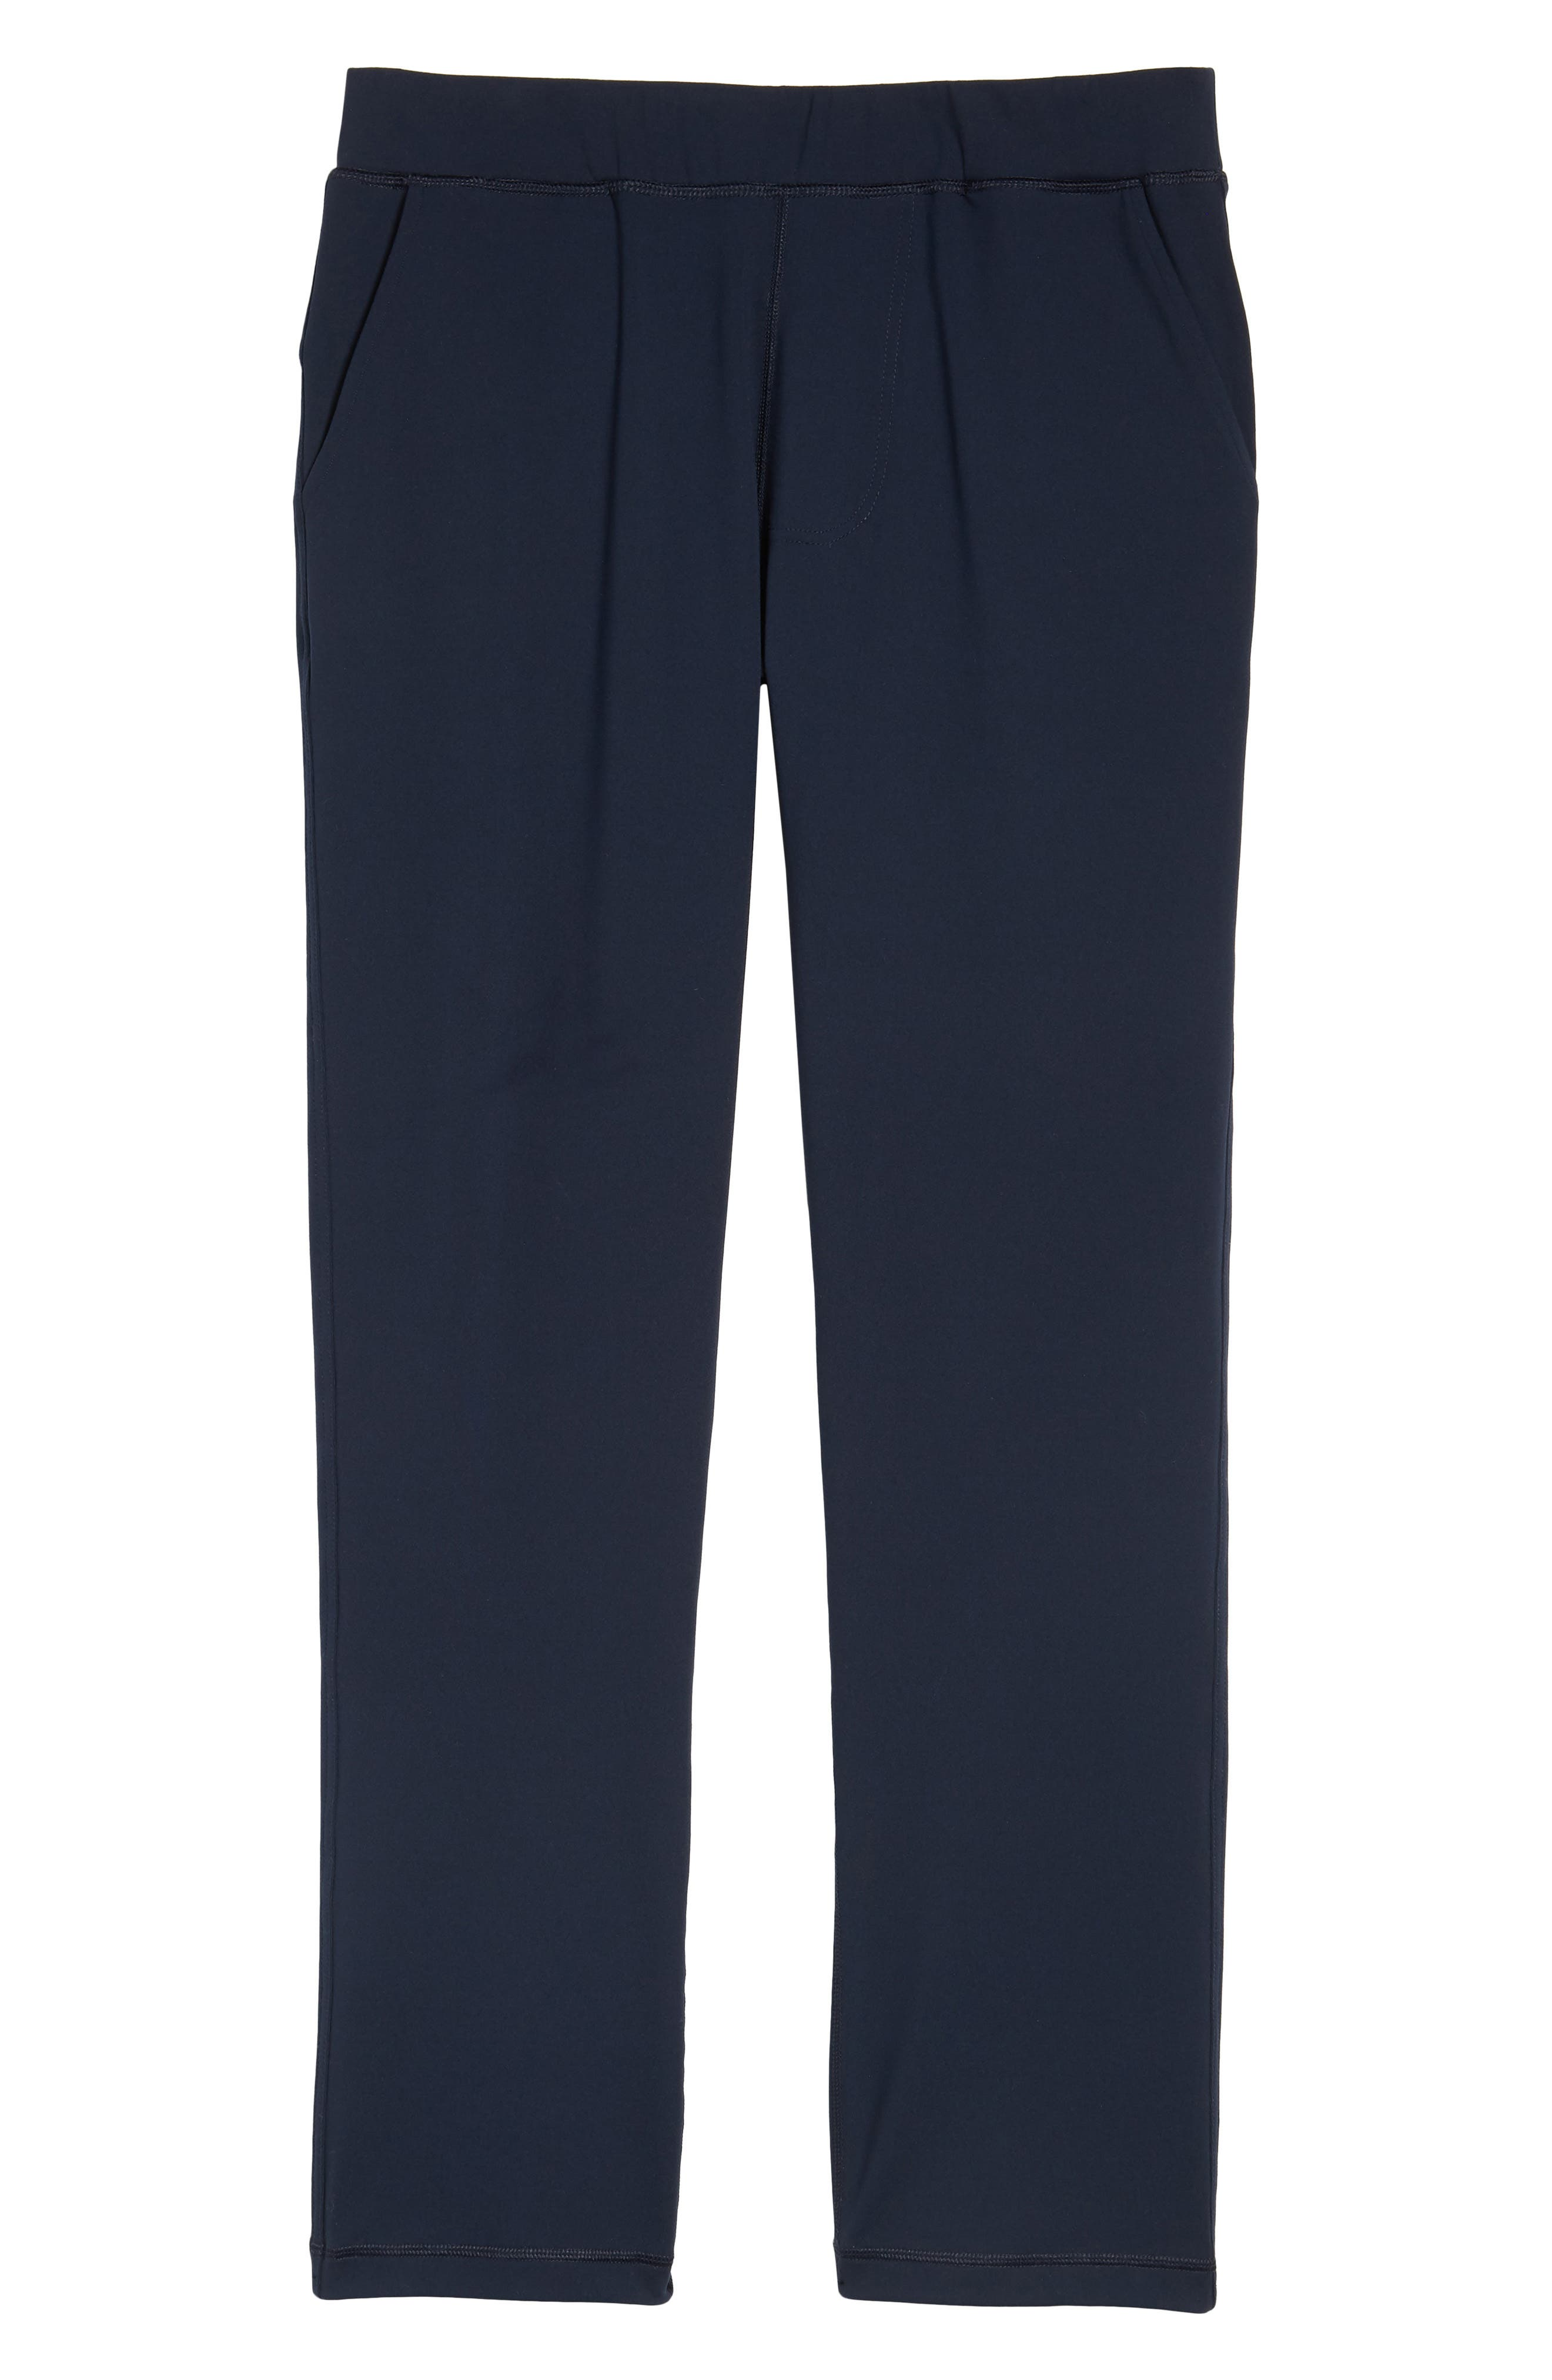 206 Pants,                             Alternate thumbnail 6, color,                             Navy